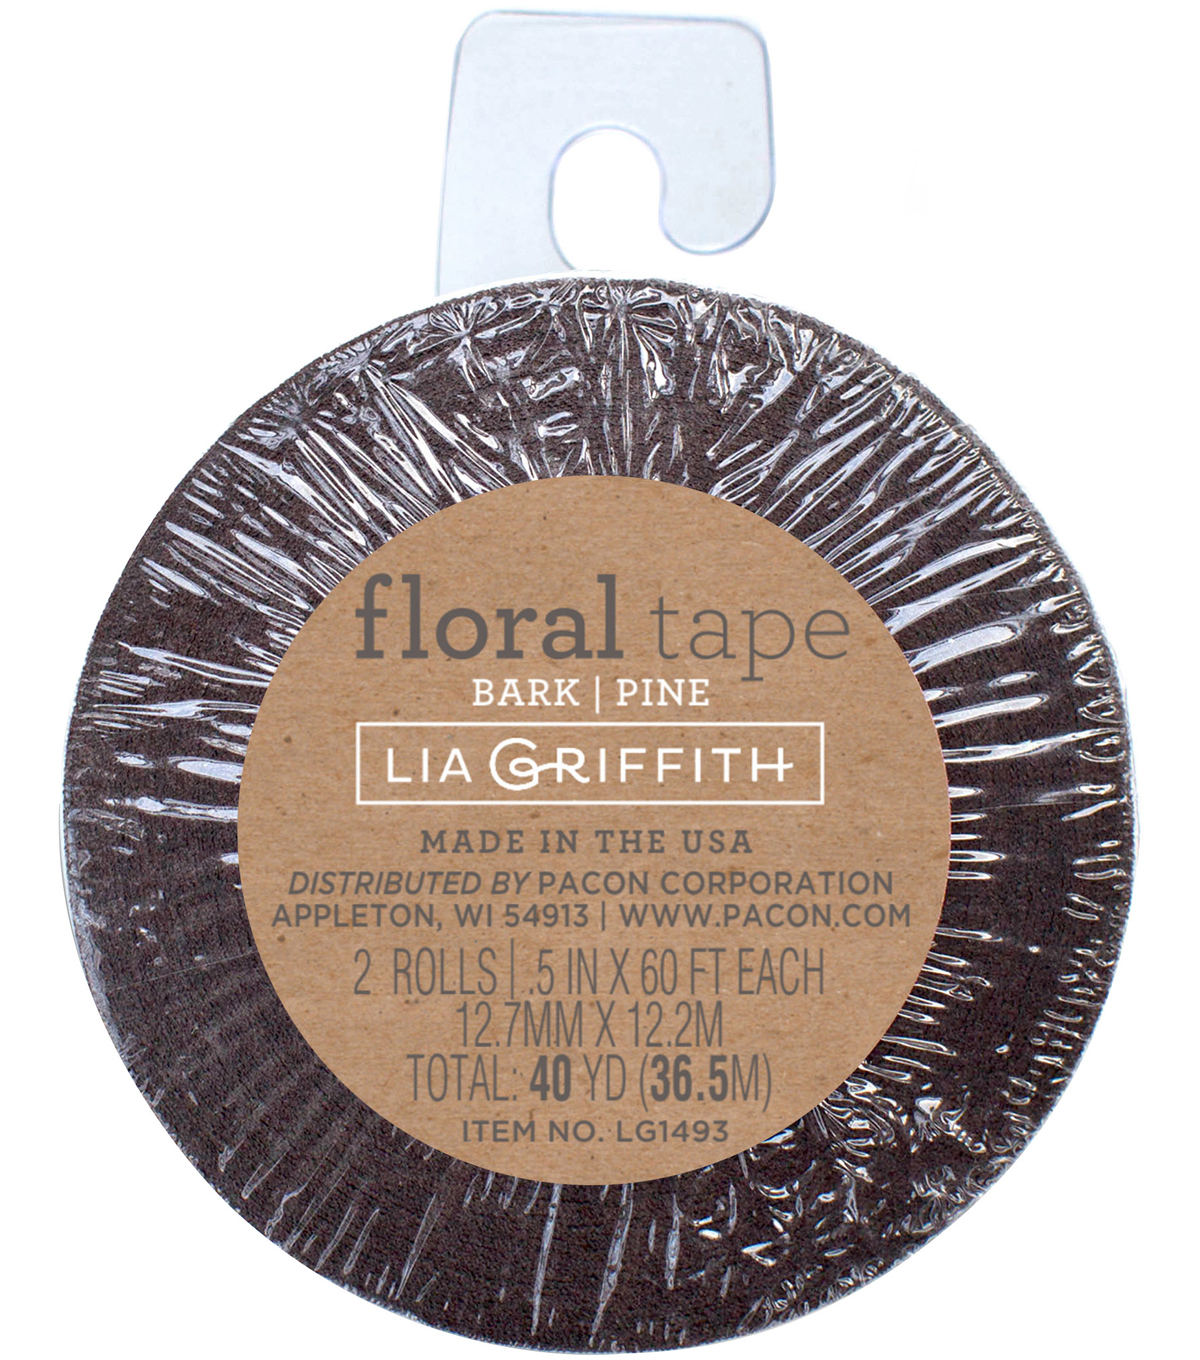 Lia Griffith Bark & Pine Floral Tapes